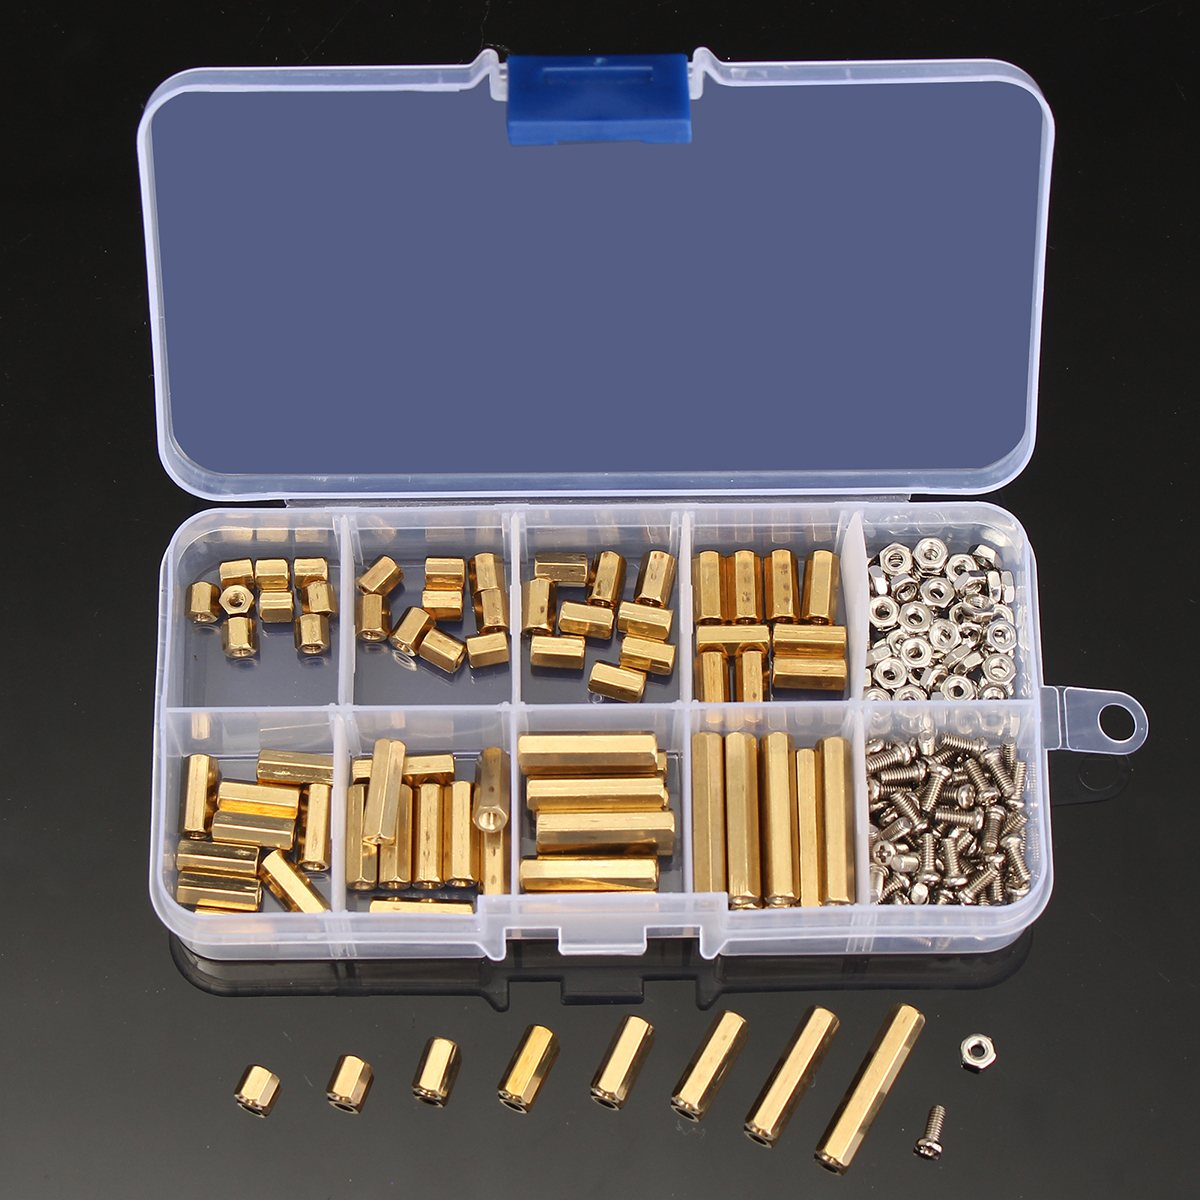 240pcs M2.5 2.5mm Brass Standoff Spacer Male x Female With M2.5 Pan Head Screws and m2.5 hex nut Assortment Kit Cap Screw 230pcs m2 5 2 5mm brass standoff spacer male x female with m2 5 6 pan head screws and m2 5 hex nut assortment kit